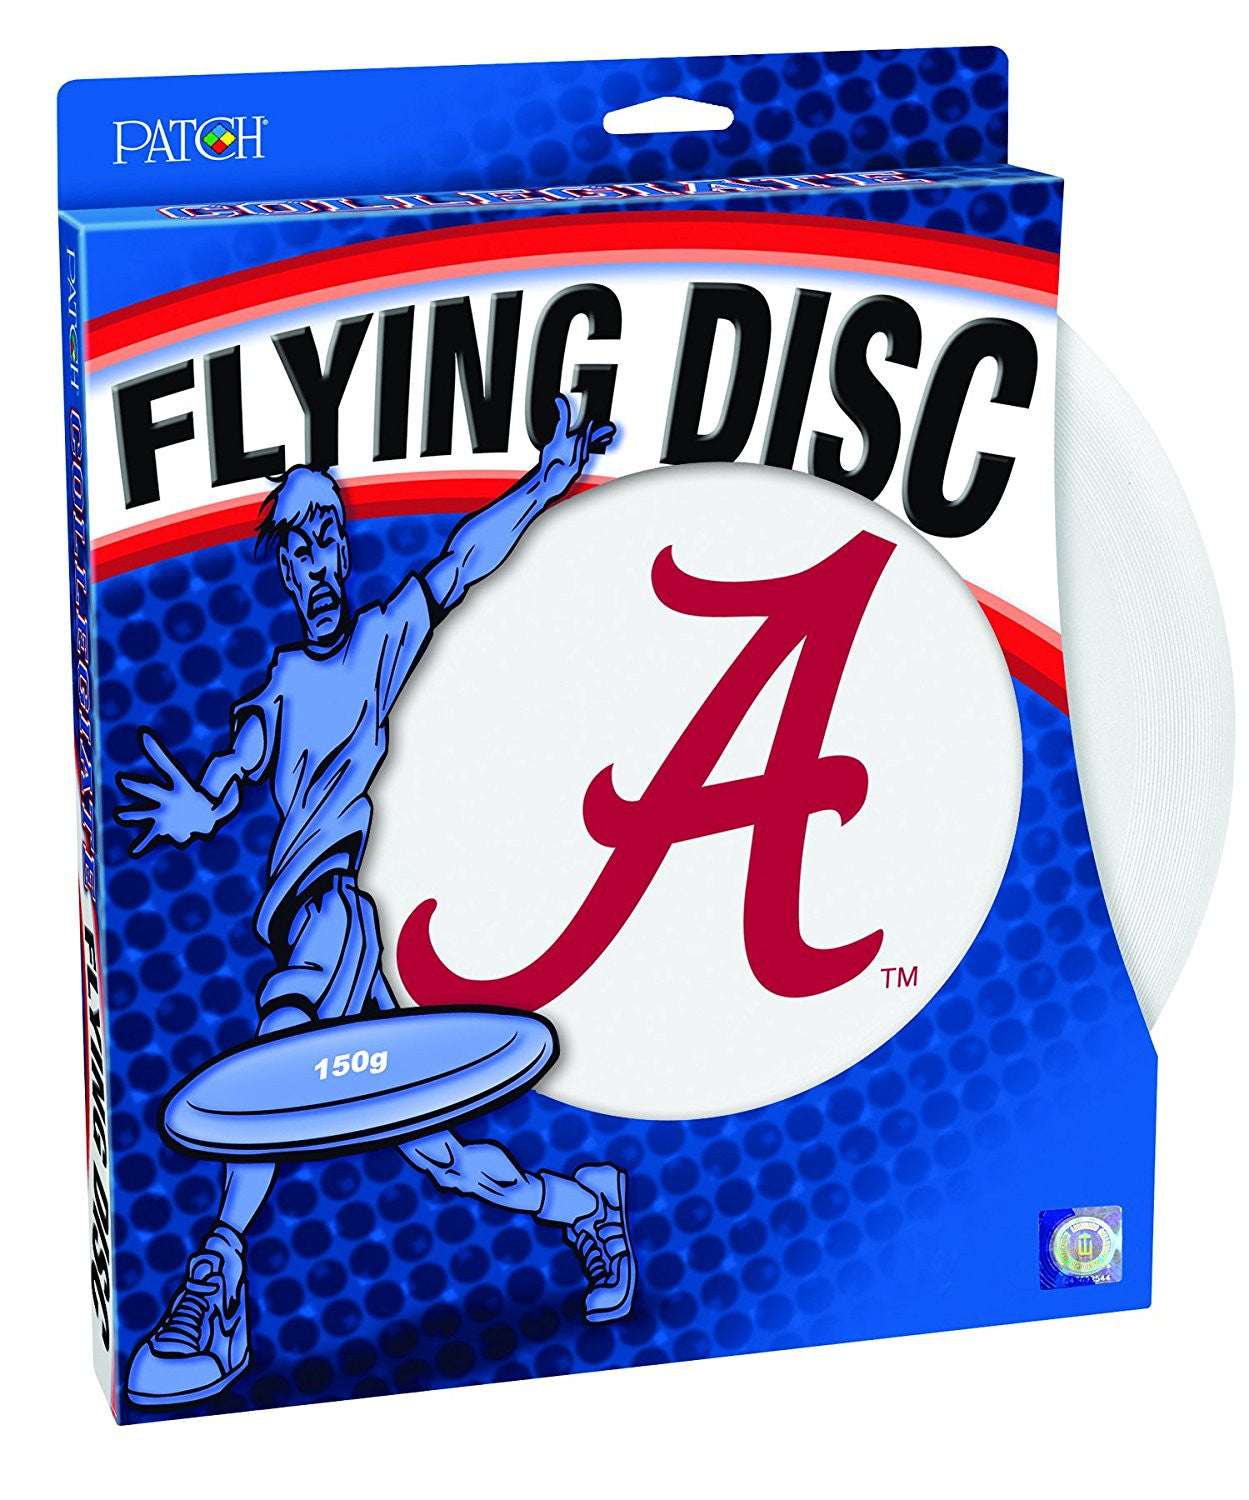 Patch Products  Alabama - Flying Disc (8CT) N11570